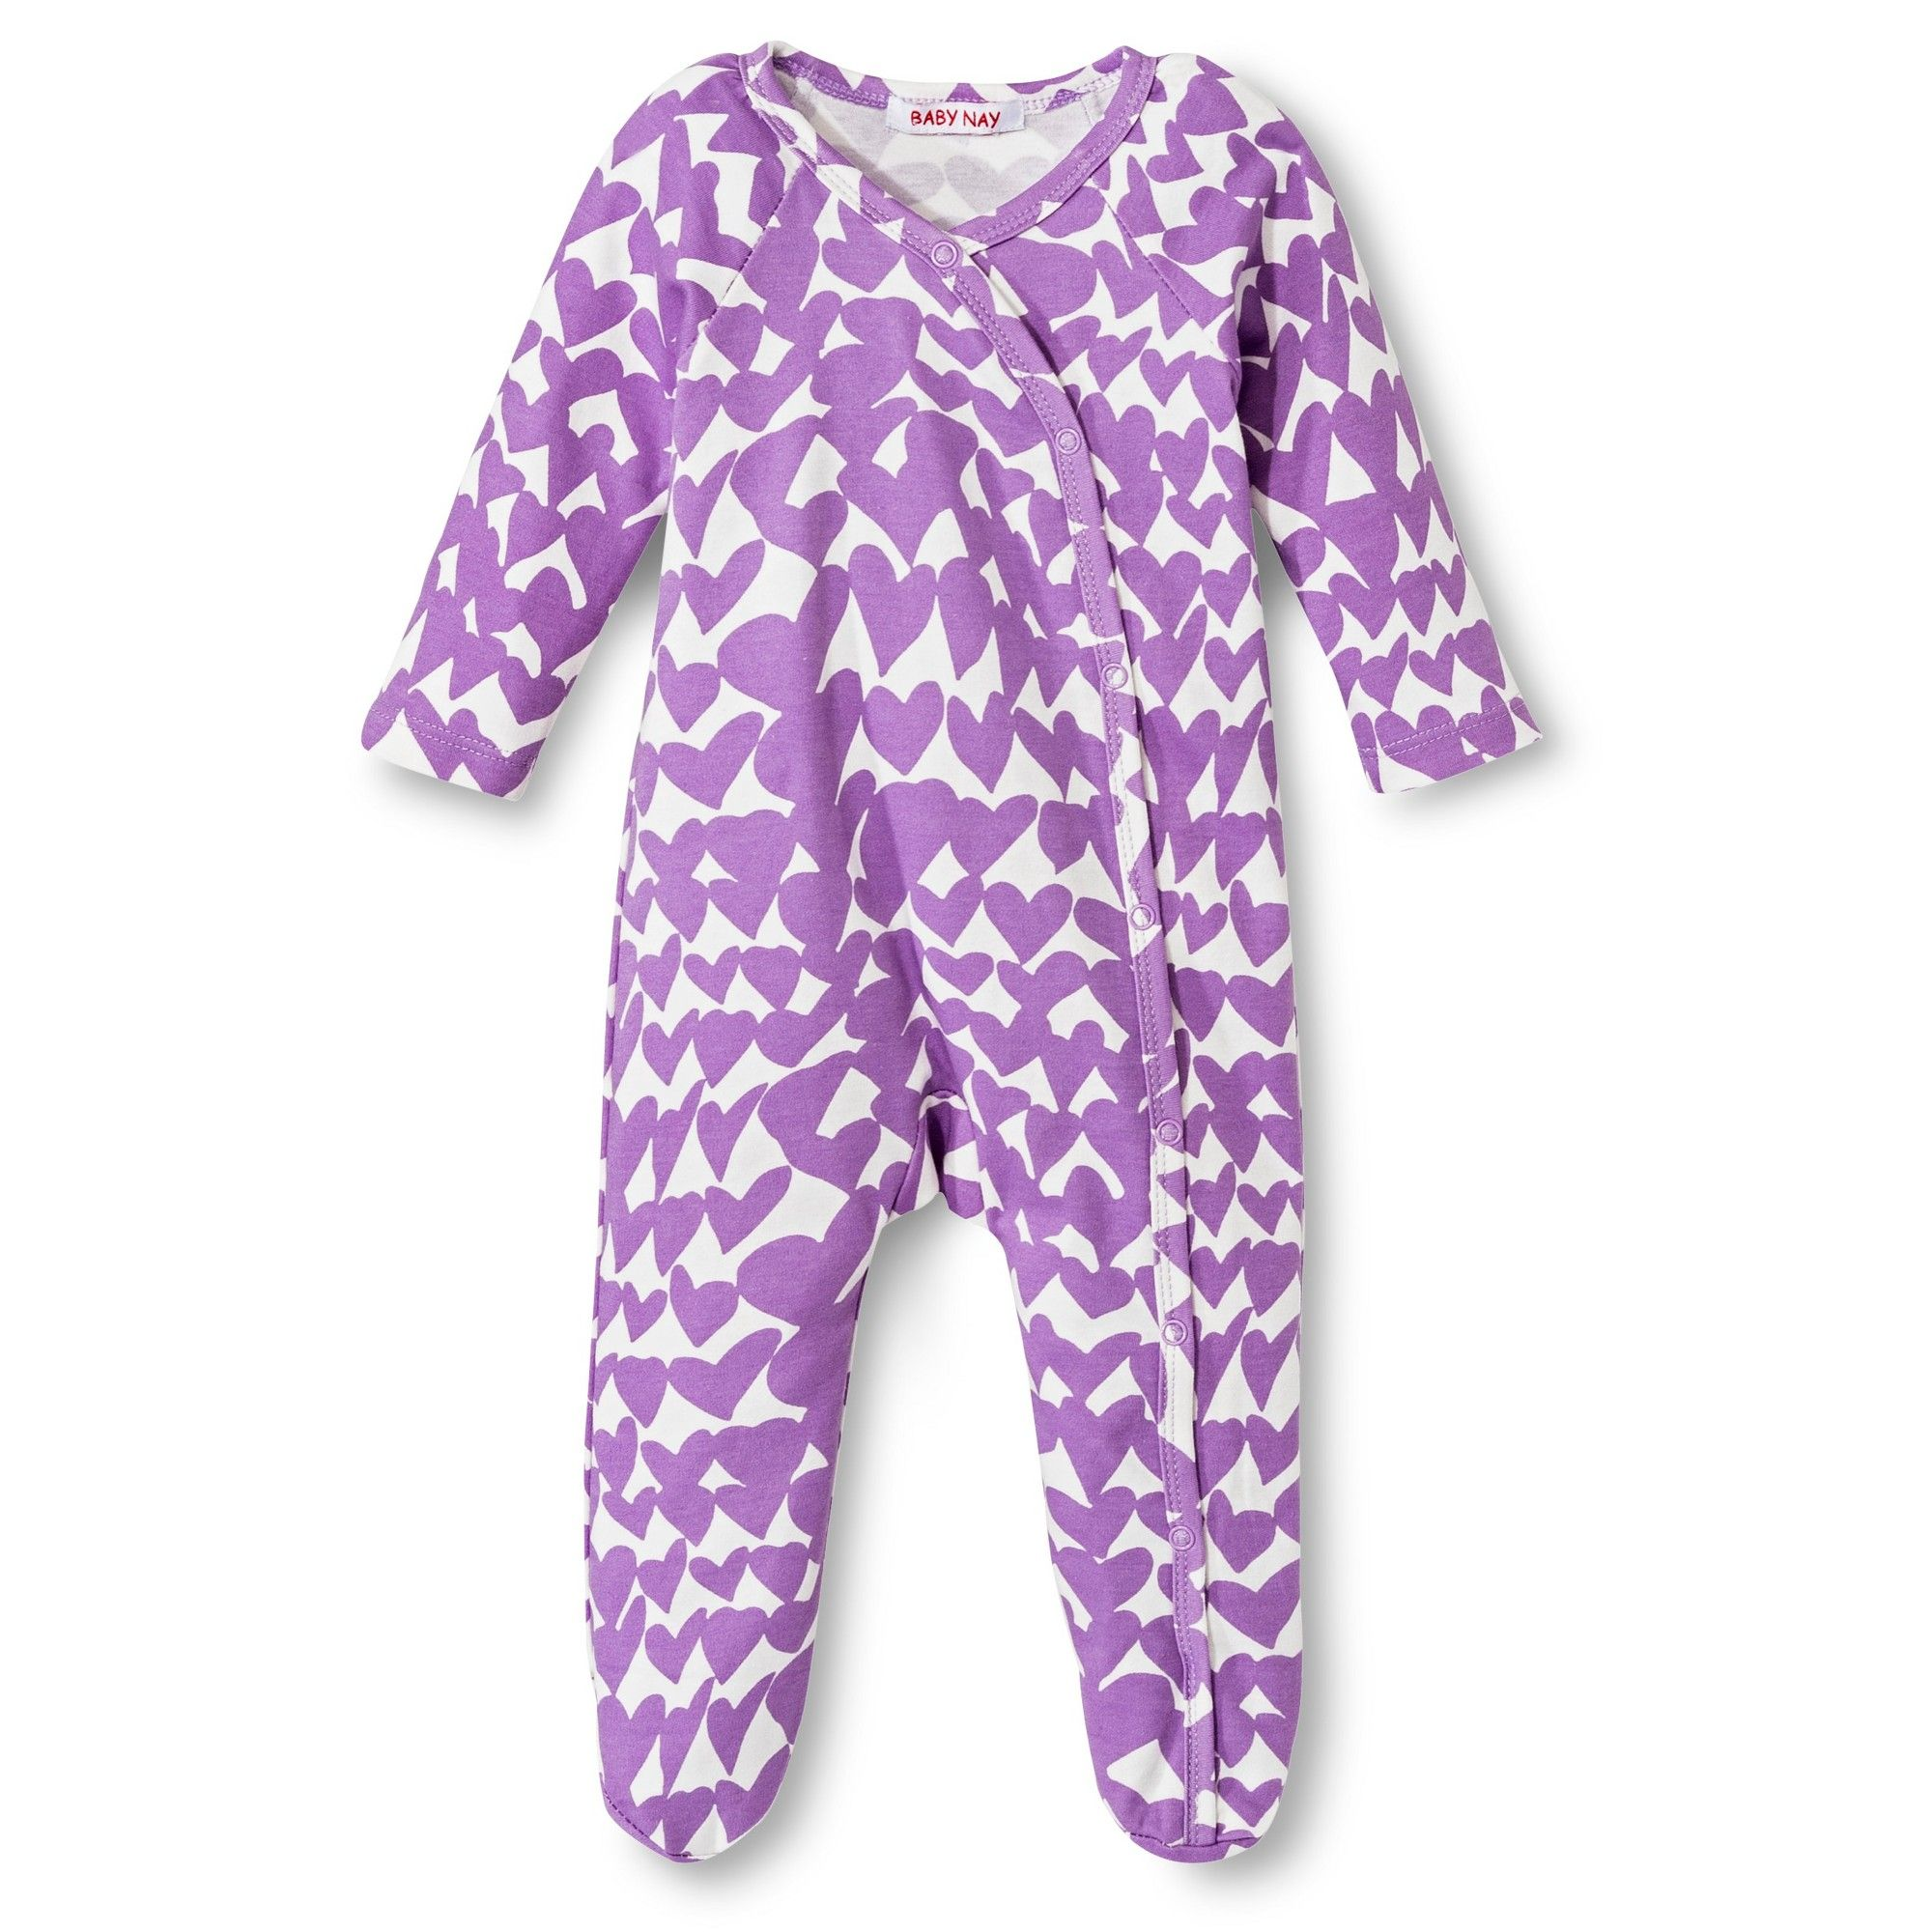 543430a36 Baby Nay Groovy Hearts Kimono Footie - Lilac 9 M